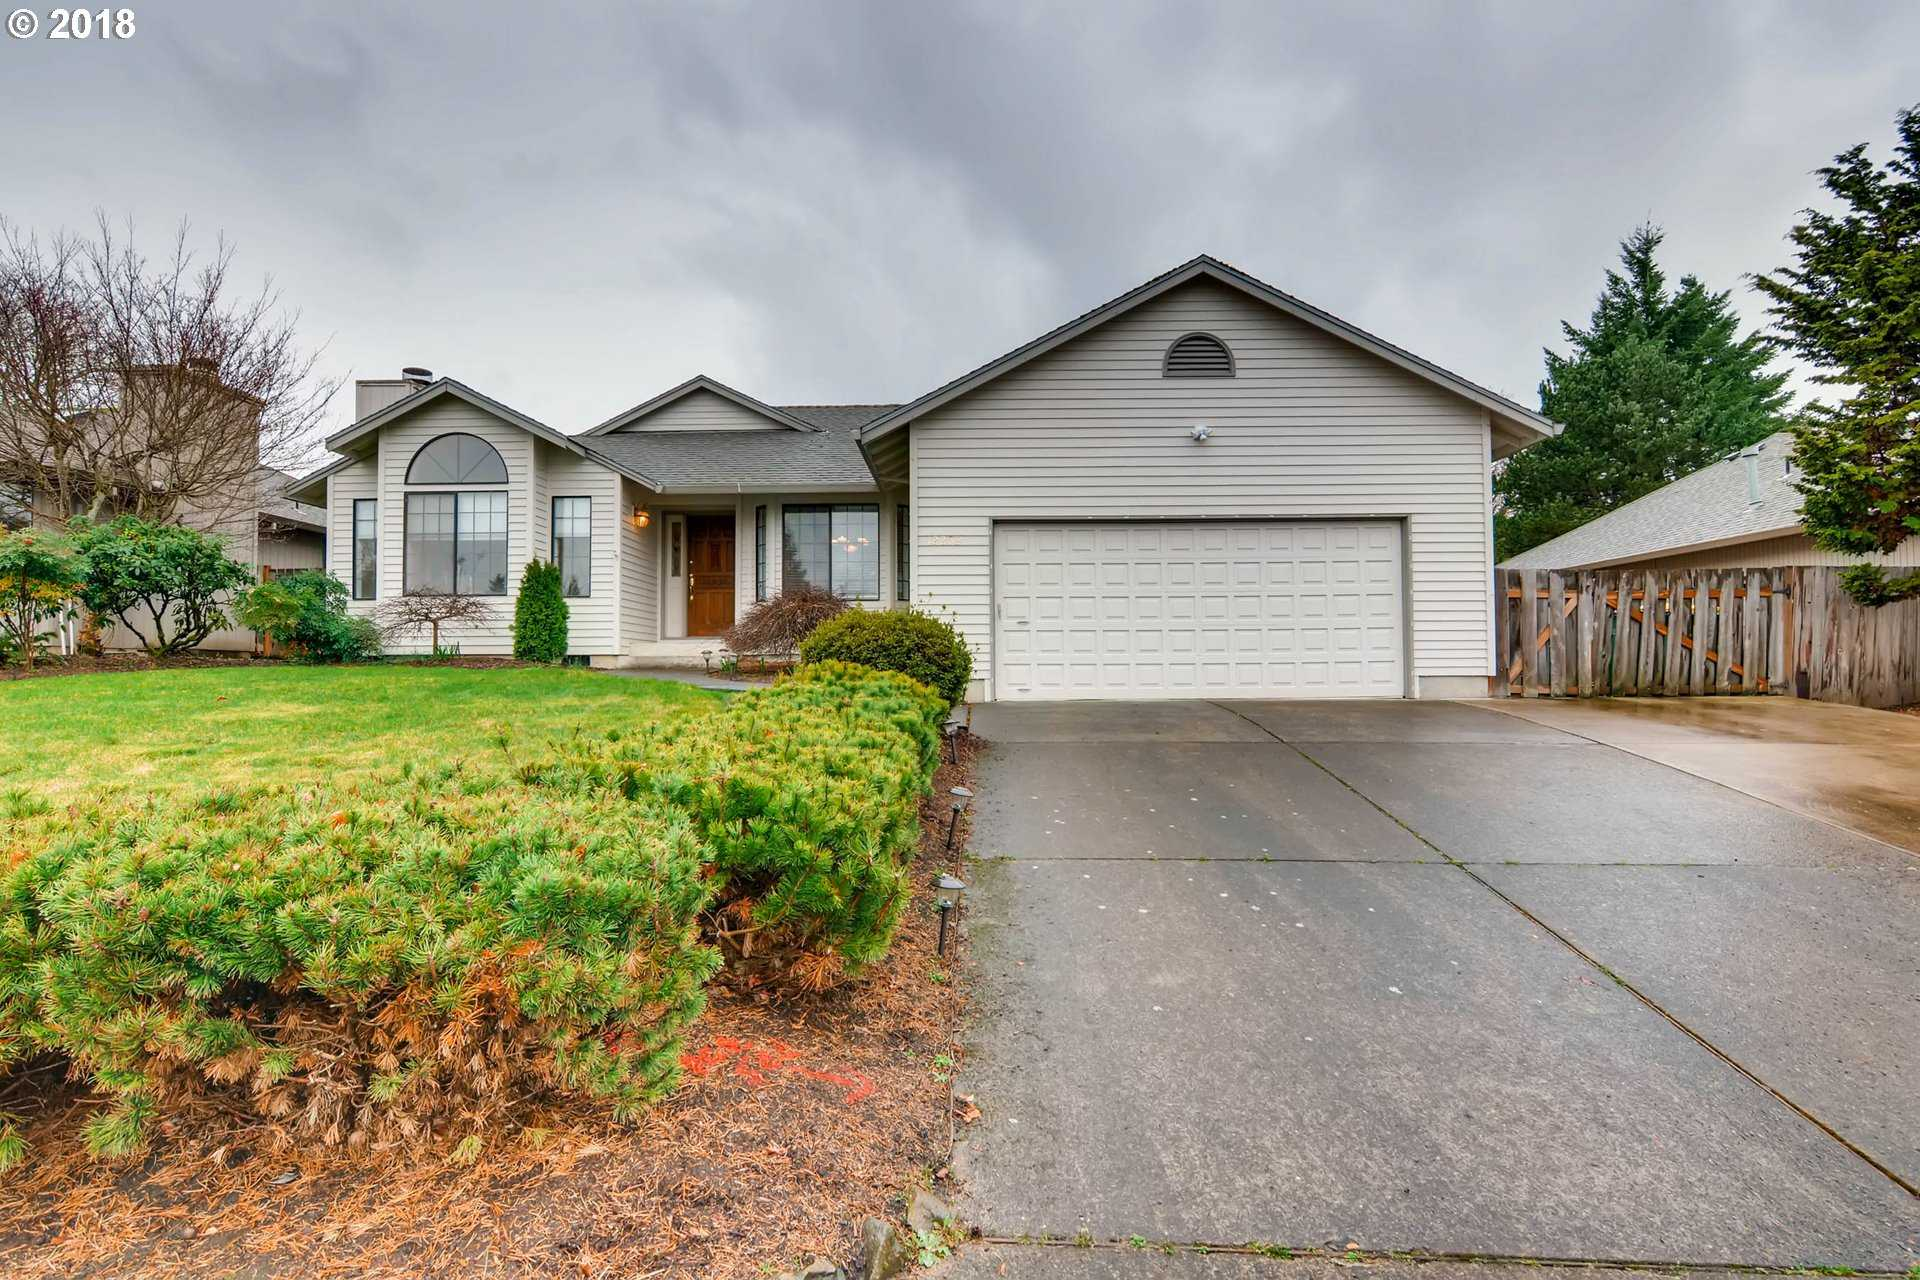 $435,000 - 3Br/2Ba -  for Sale in Tigard